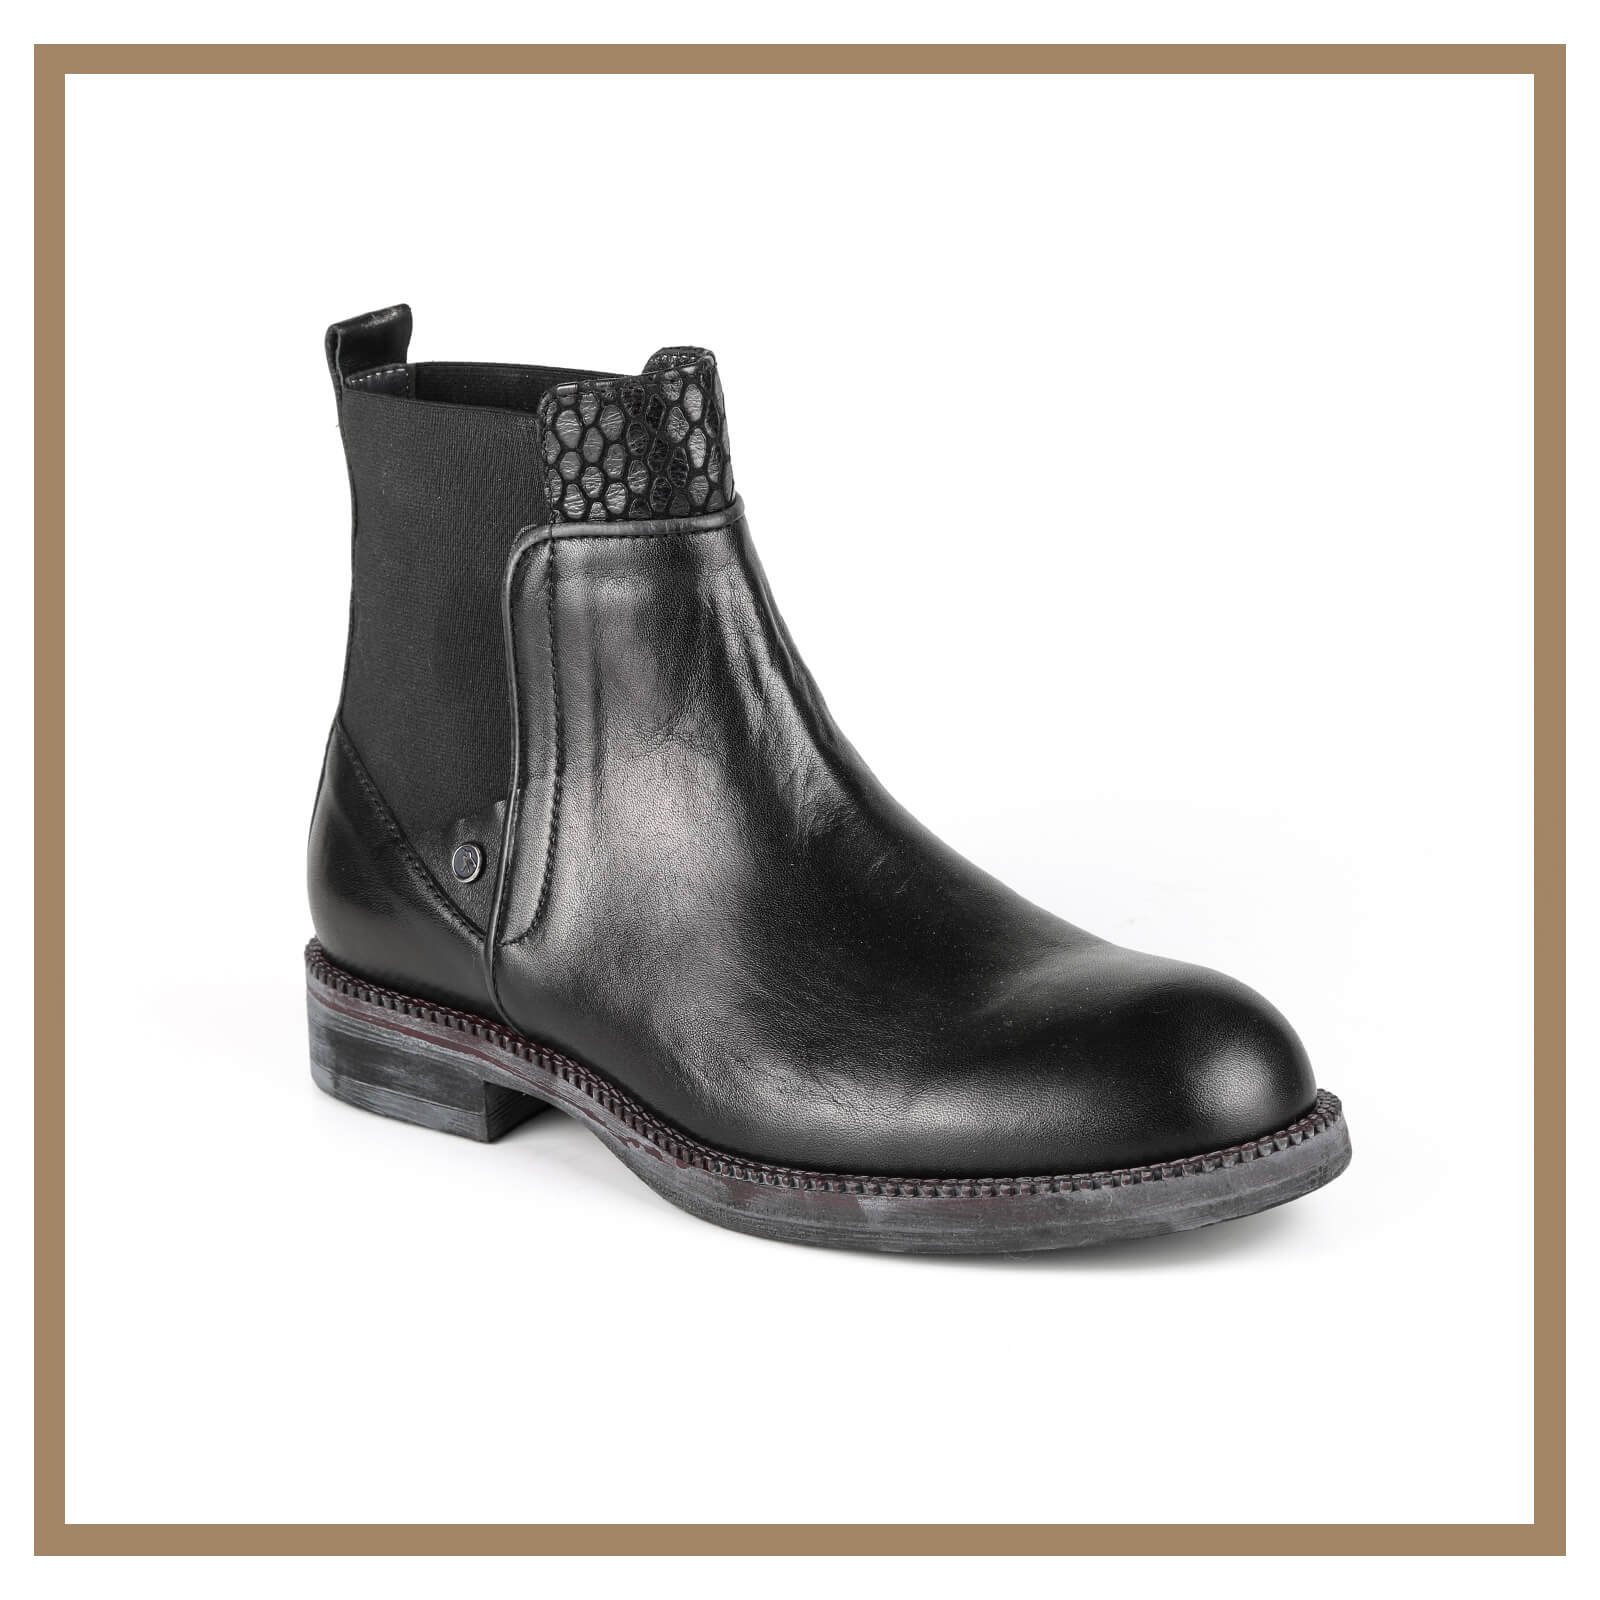 Leather Man Boots 005